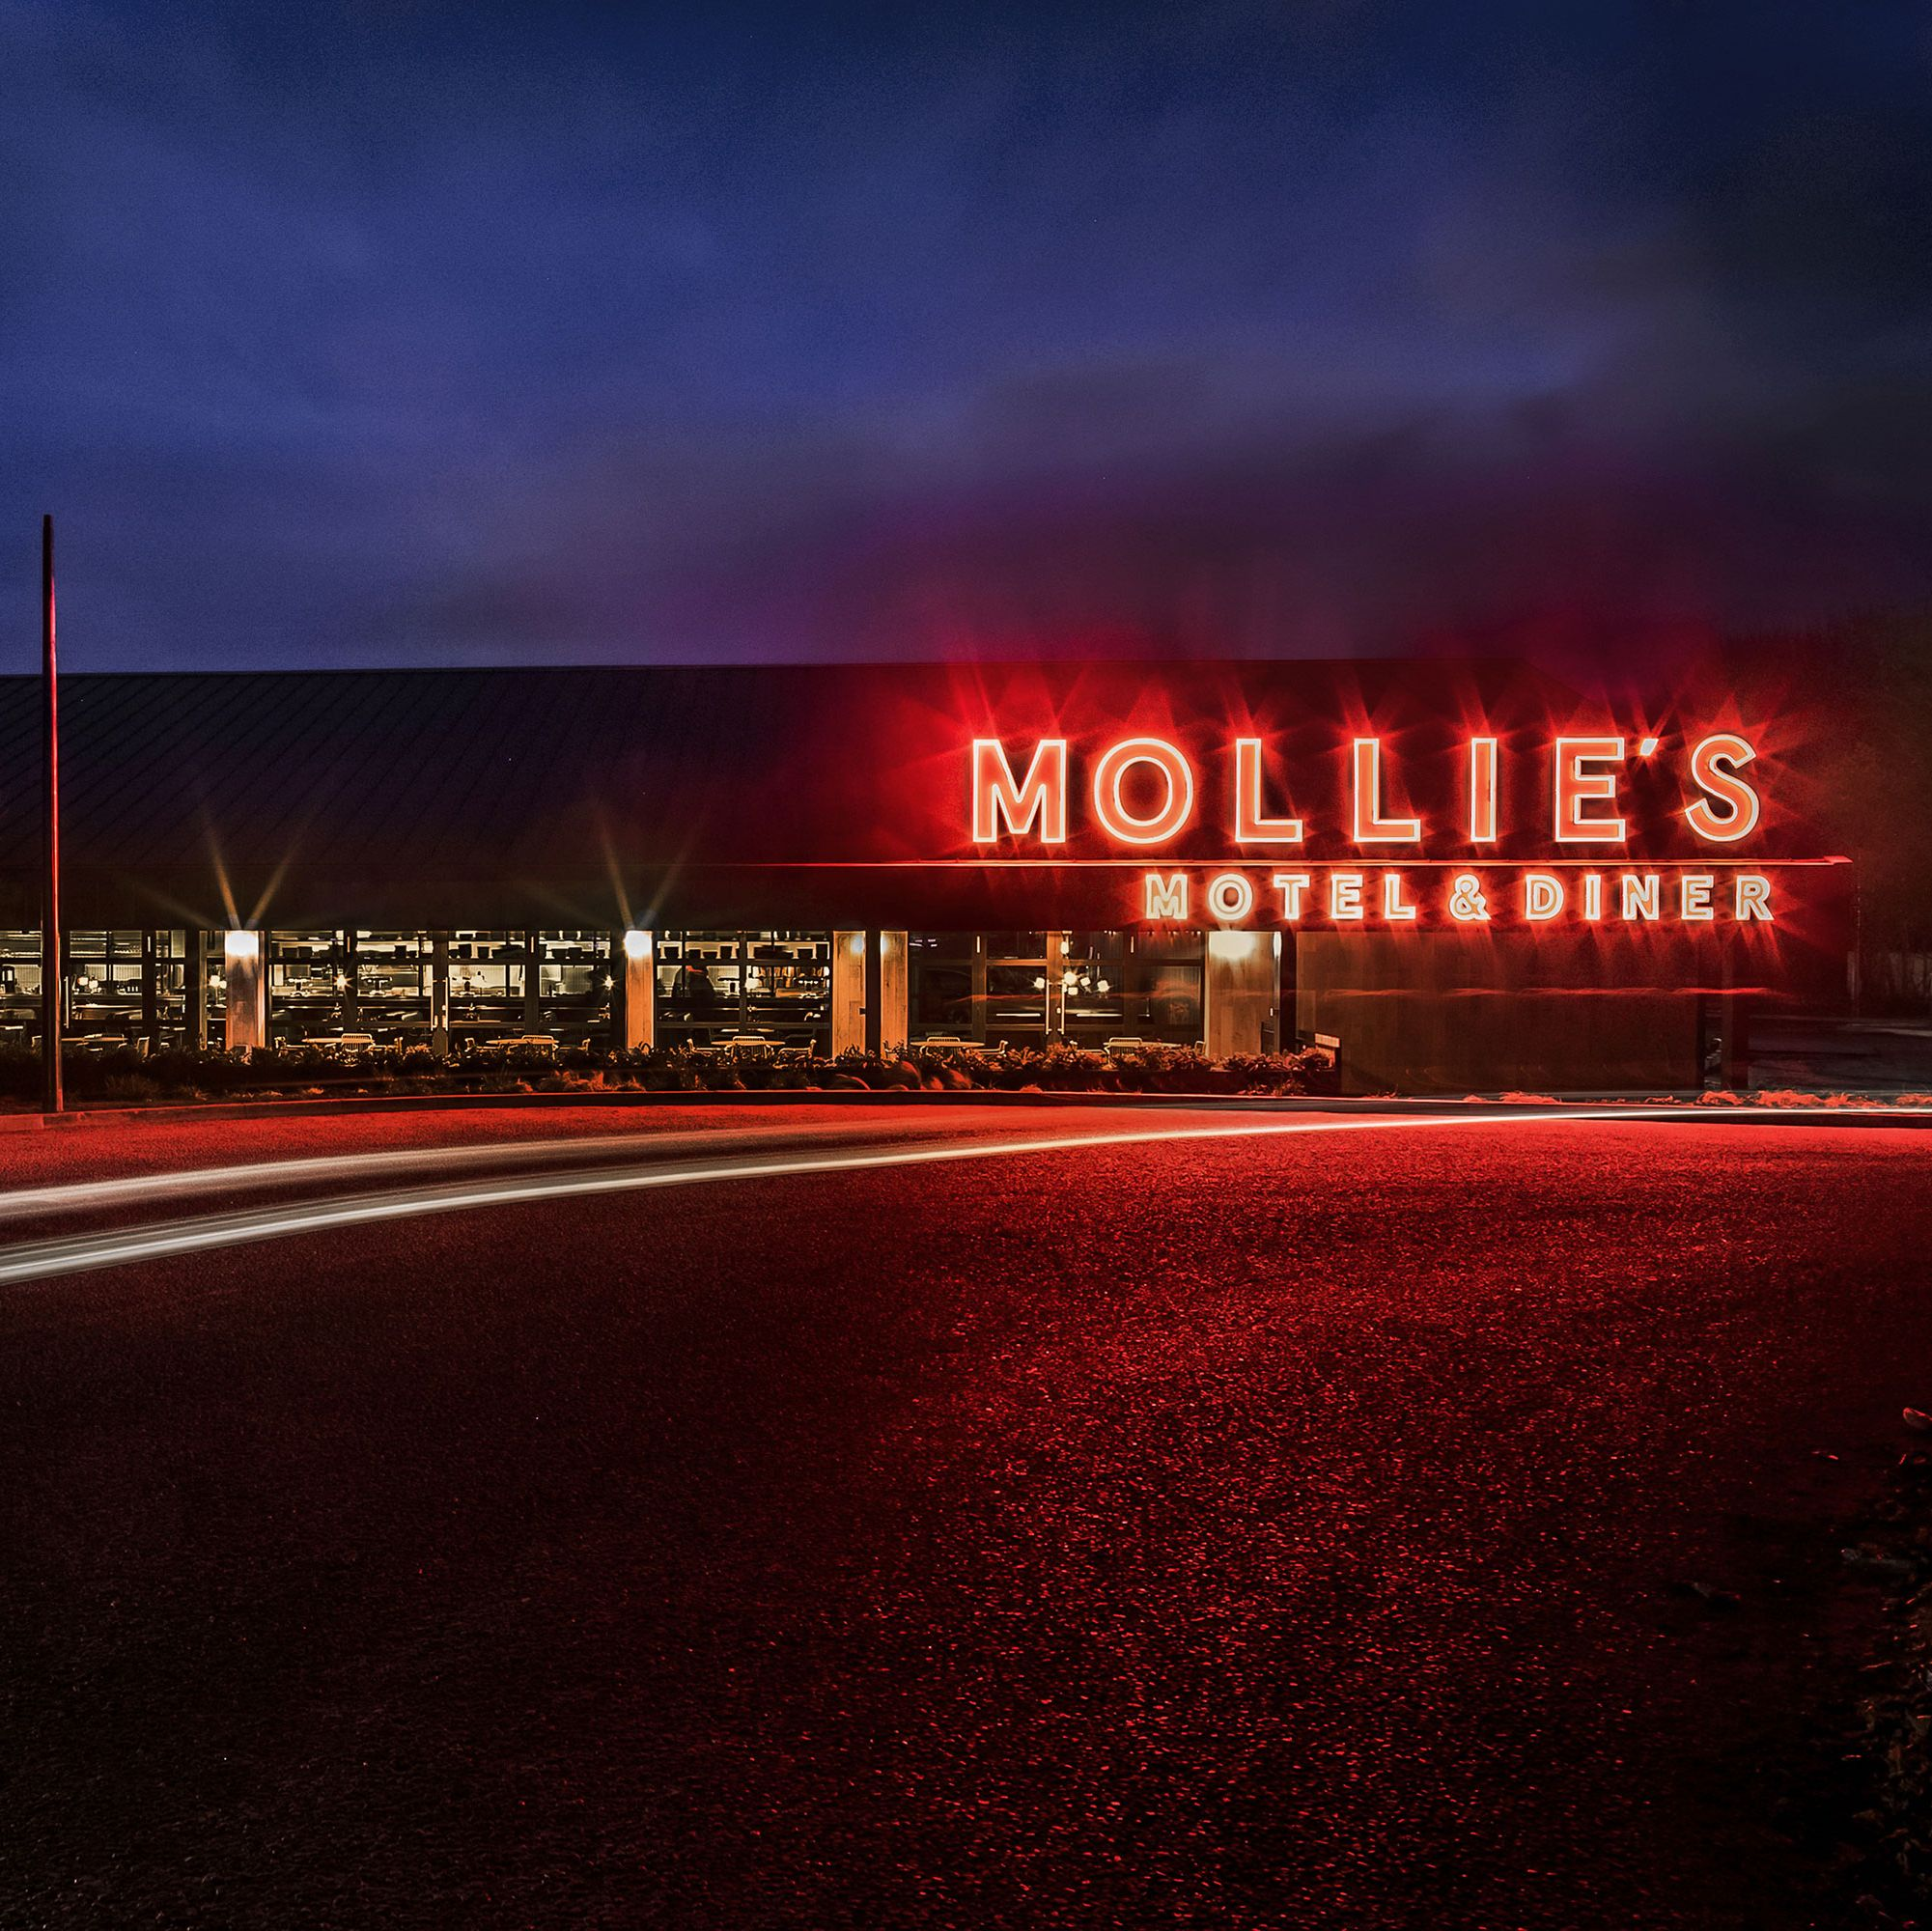 Inside Mollie's motel and diner: the new £50 a night hotel from Soho House